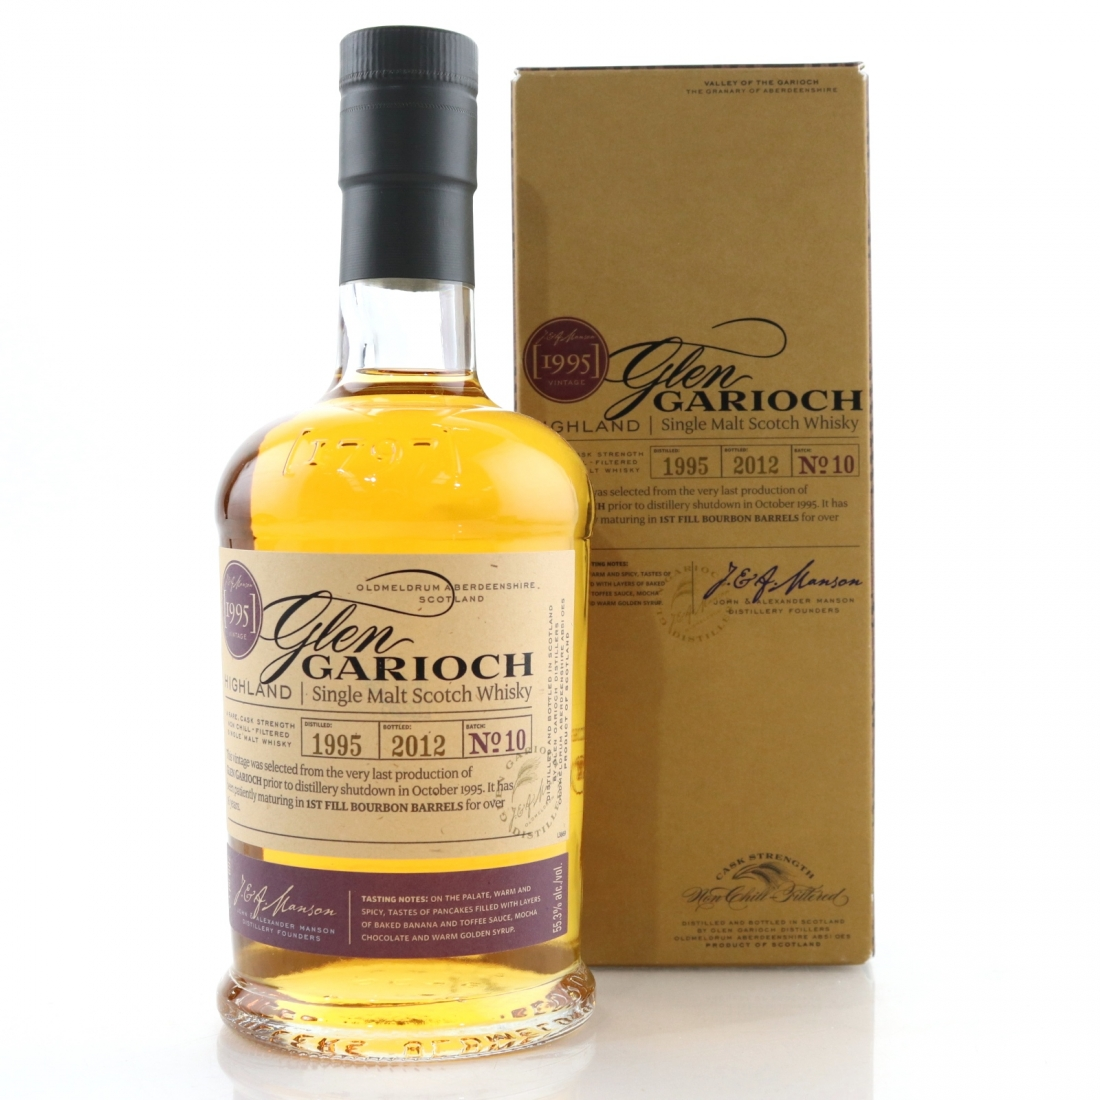 Glen Garioch 1995 1st Fill Bourbon Barrel 16 Year Old